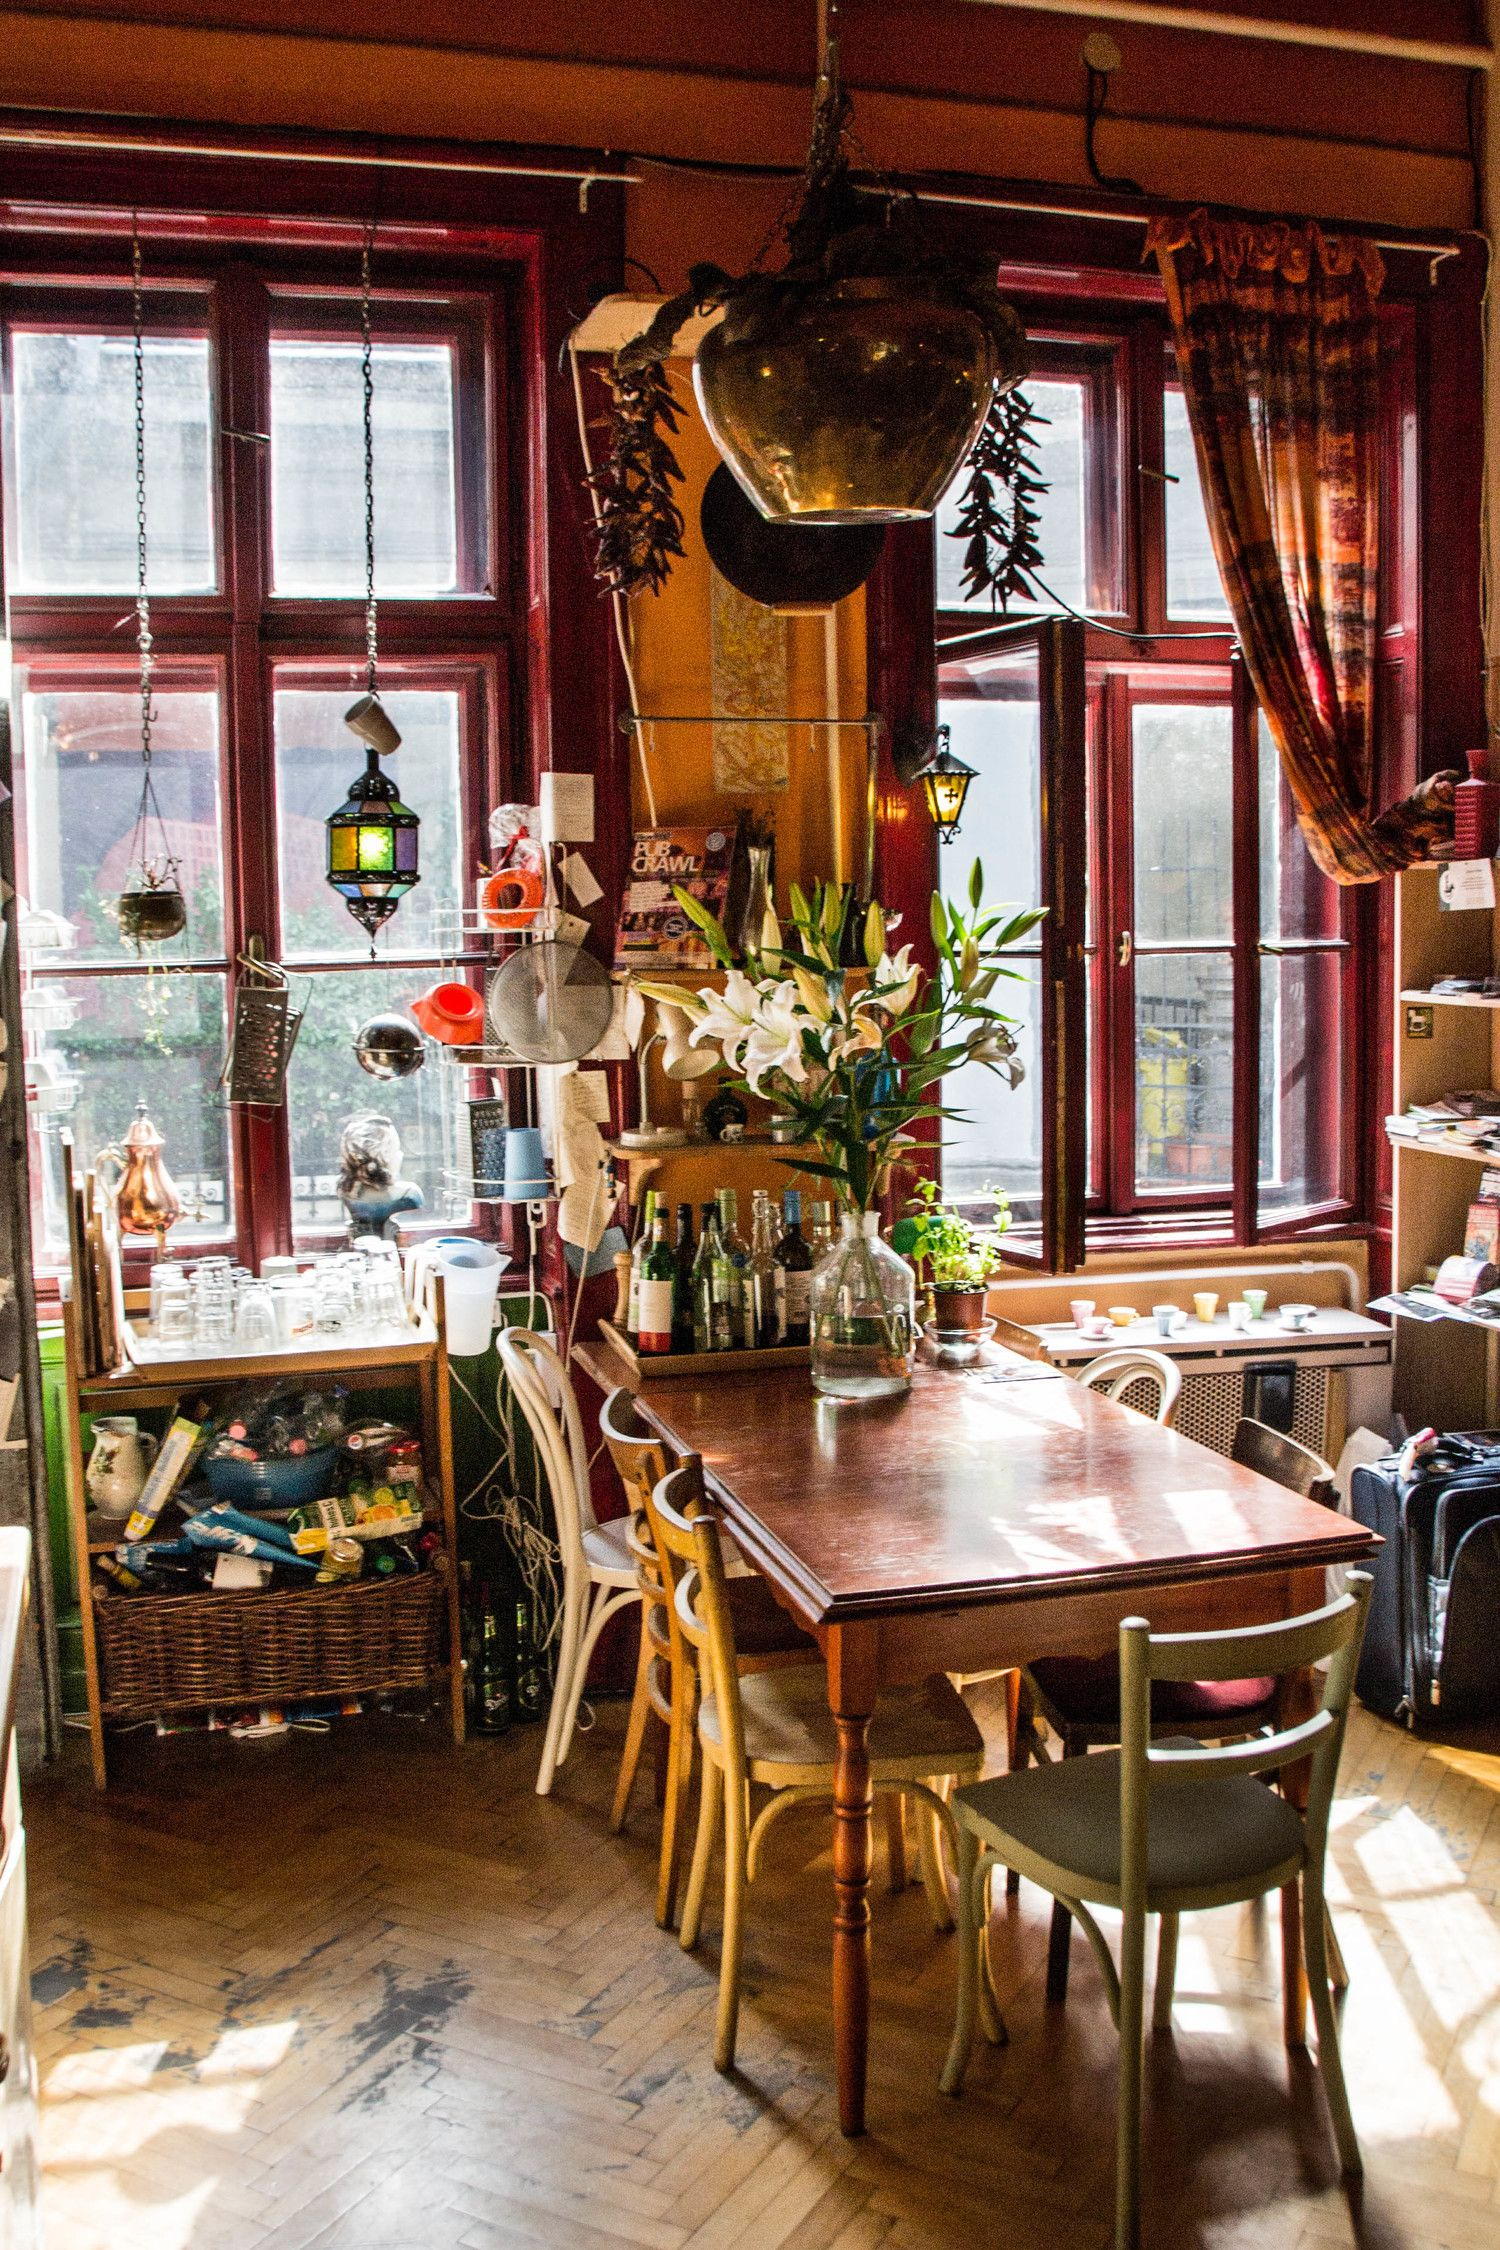 A Hostel with Chairs on the Wall - A Review of Lavender Circus Hostel, Budapest. — Wandering Class